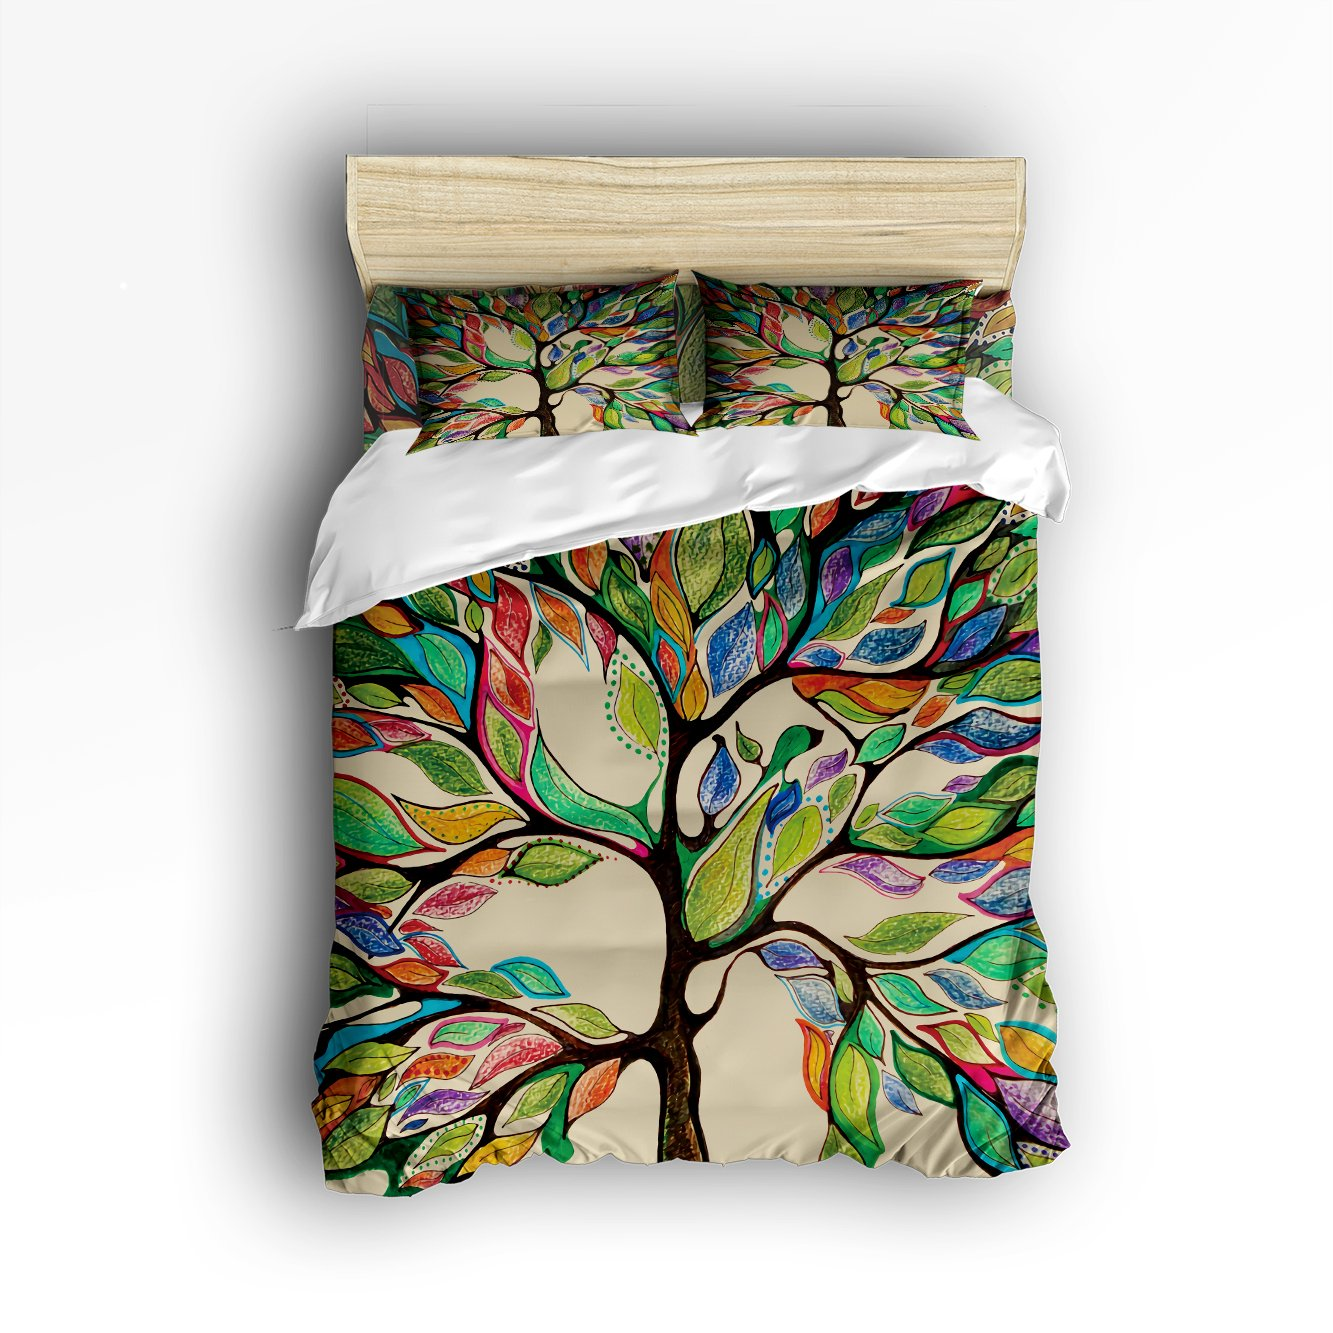 4Pieces Home Comforter Bedding Sets Duvet Cover Sets Bedspread for Adult Kids,Flat Sheet,Shams Set,Colorful Big Tree,Tree of Life Digital Printing King Size by LovingIn